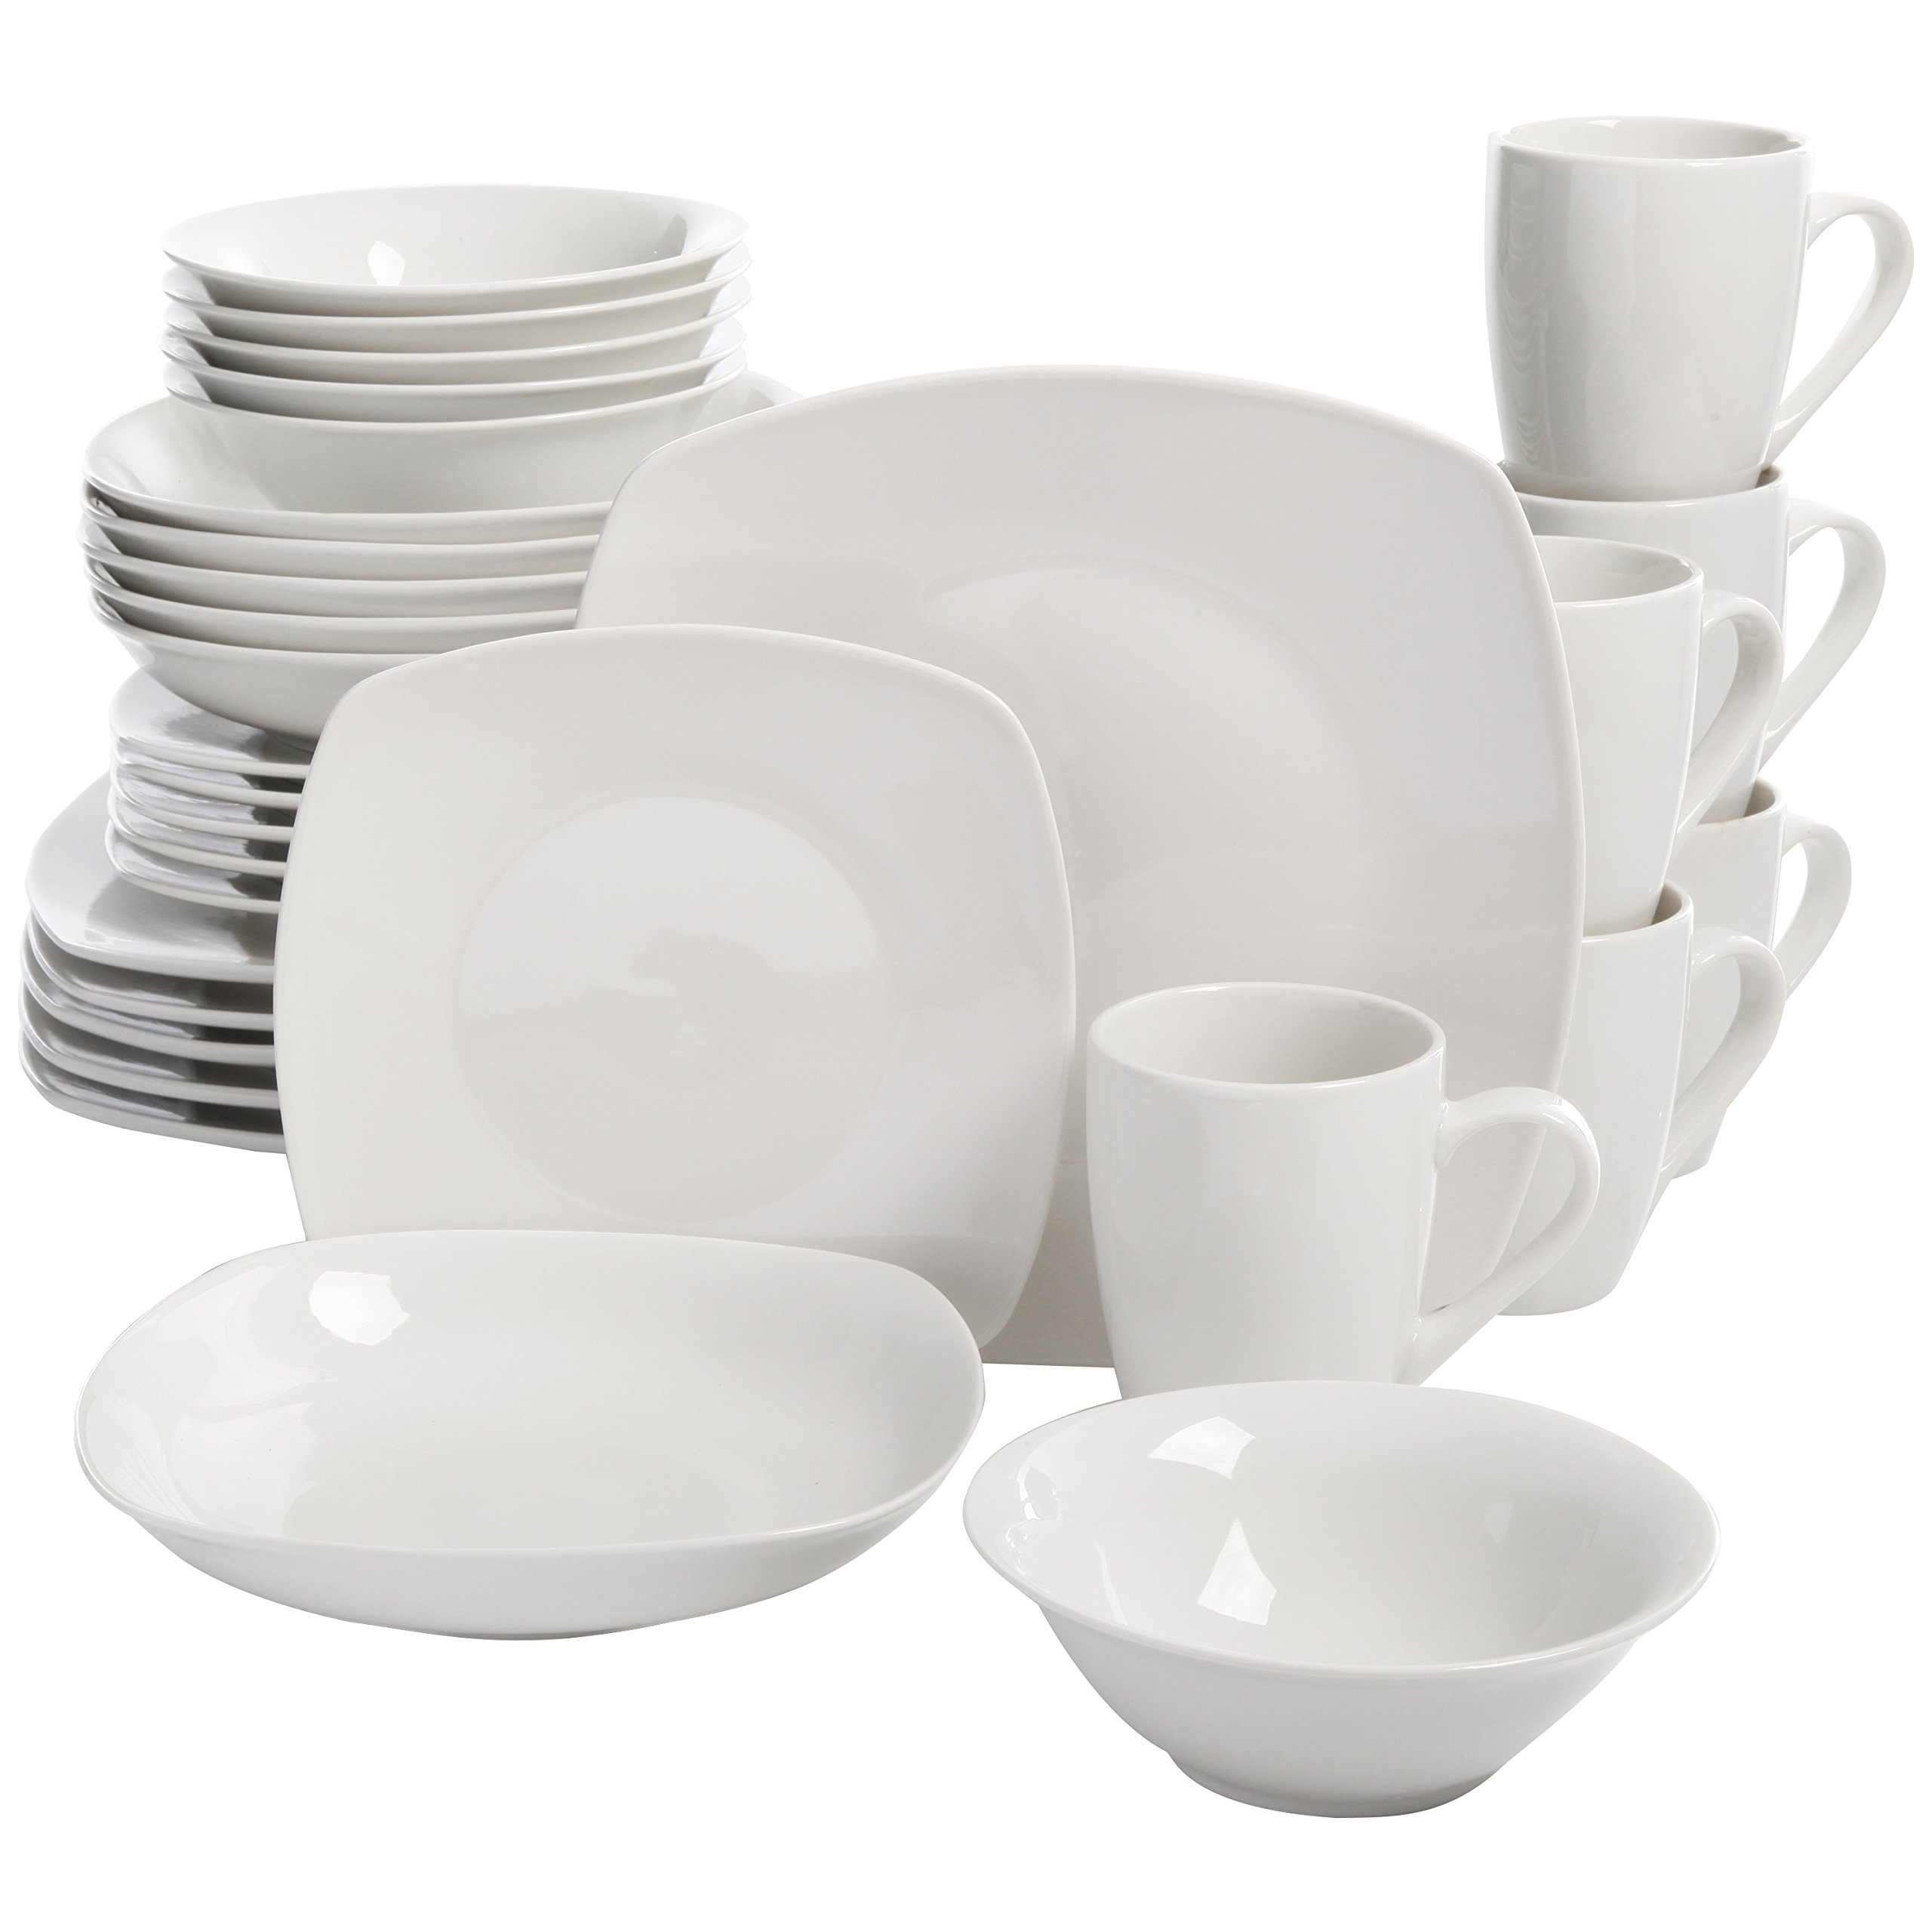 Square Dinnerware Set, 30 Piece Dish Set, White, Contemporary, Square Dishes for the Home,